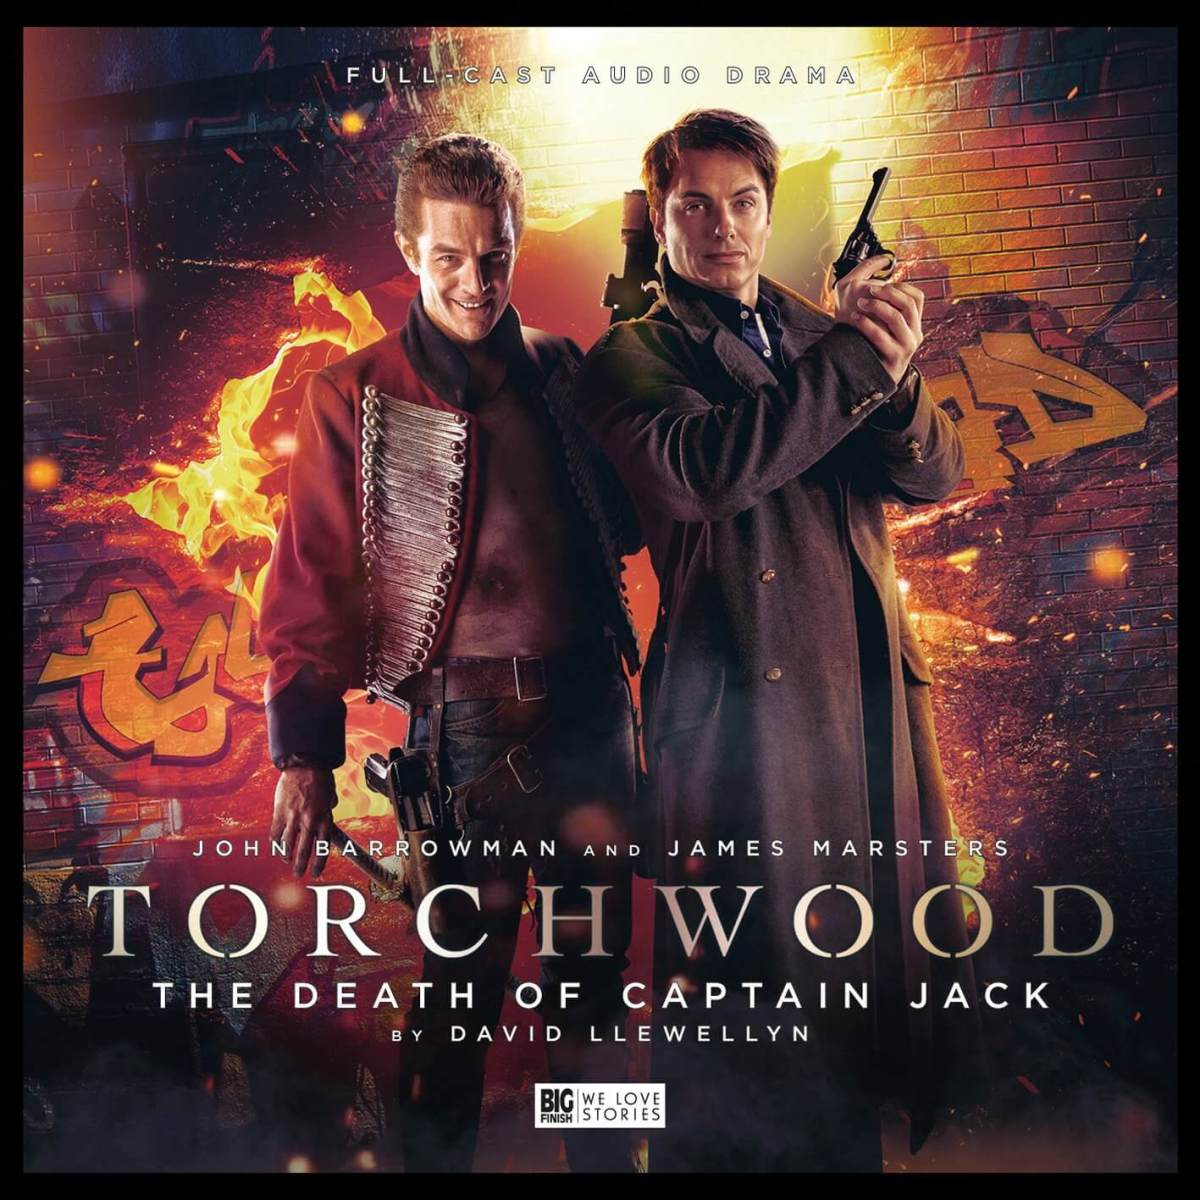 Torchwood: The Death of Captain Jack review